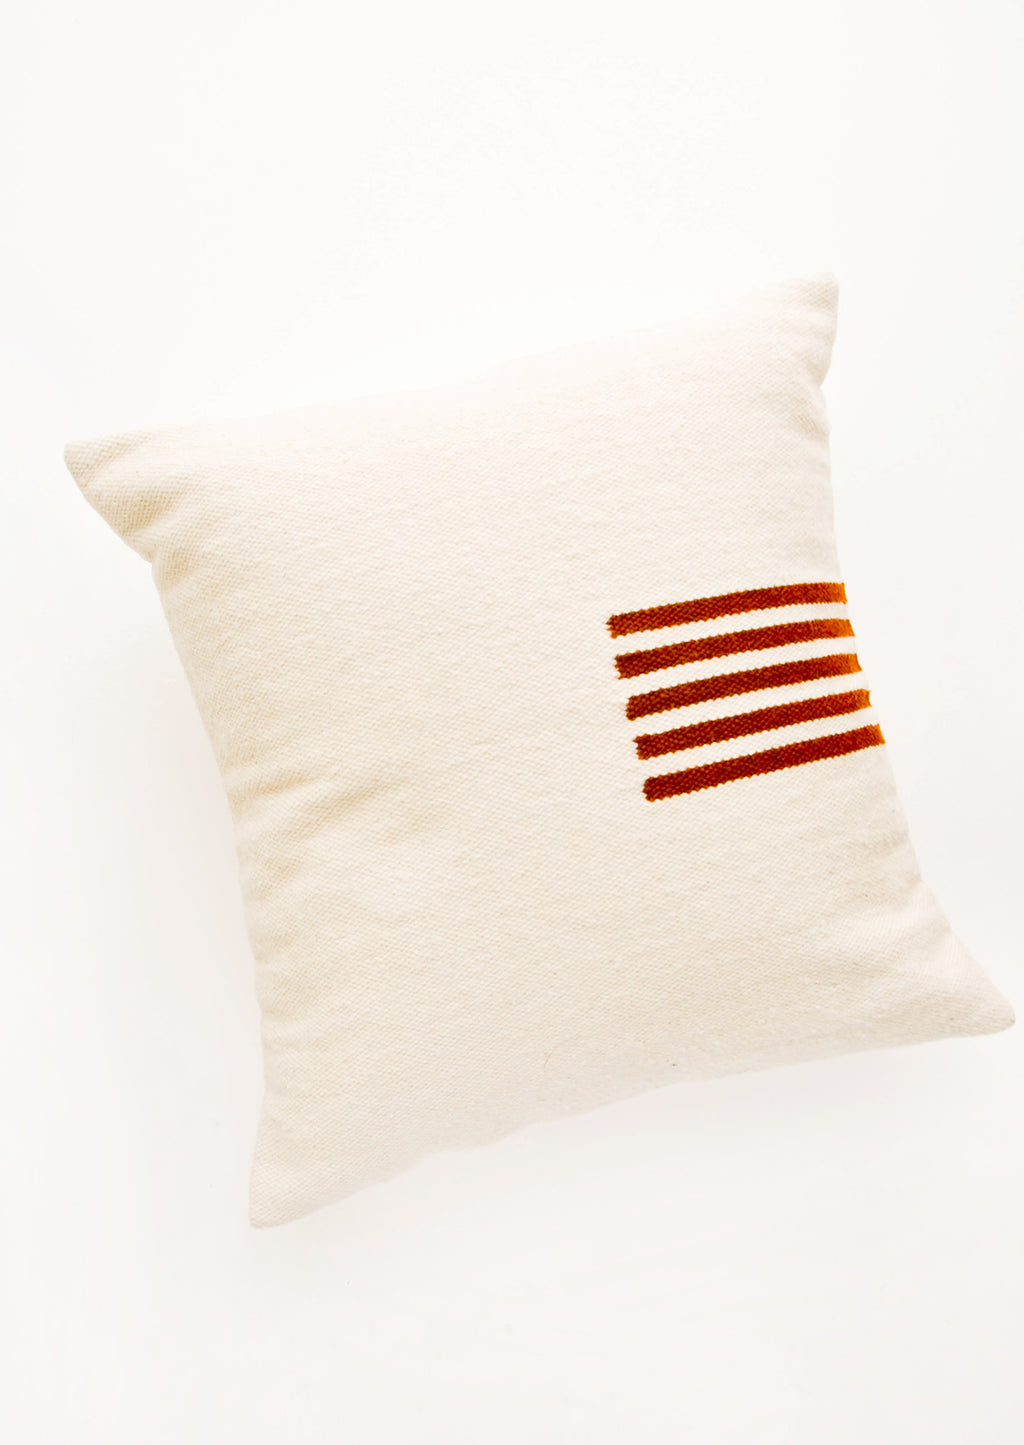 Natural / Terracotta: Ivory colored, square wool throw pillow with contrasting small stripe detail at side.